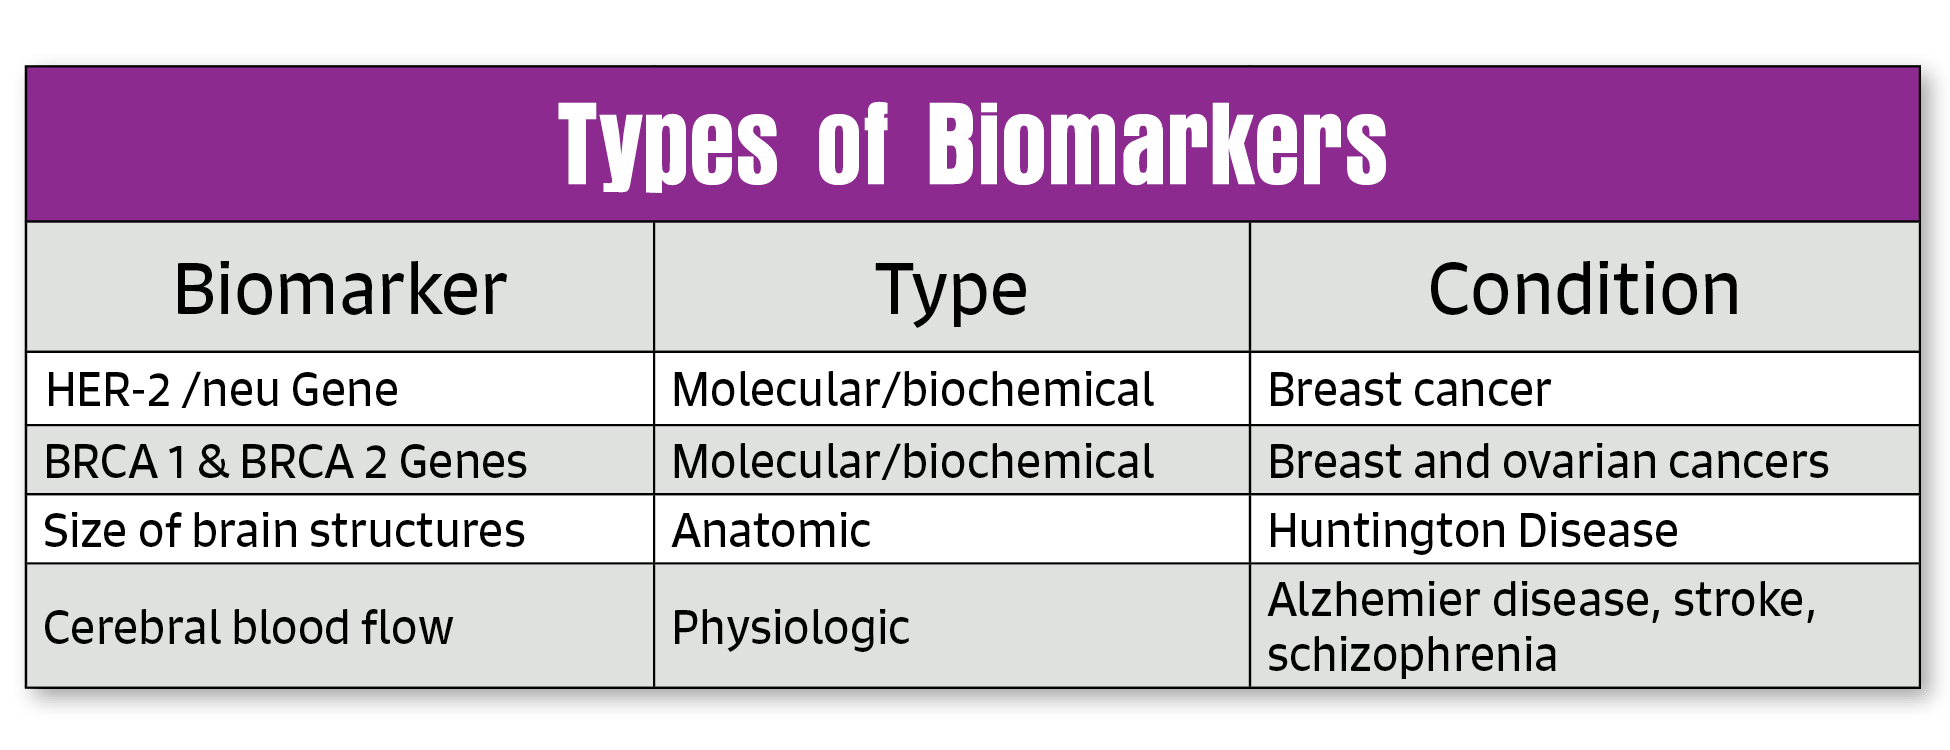 how to detect cancer biomarkers